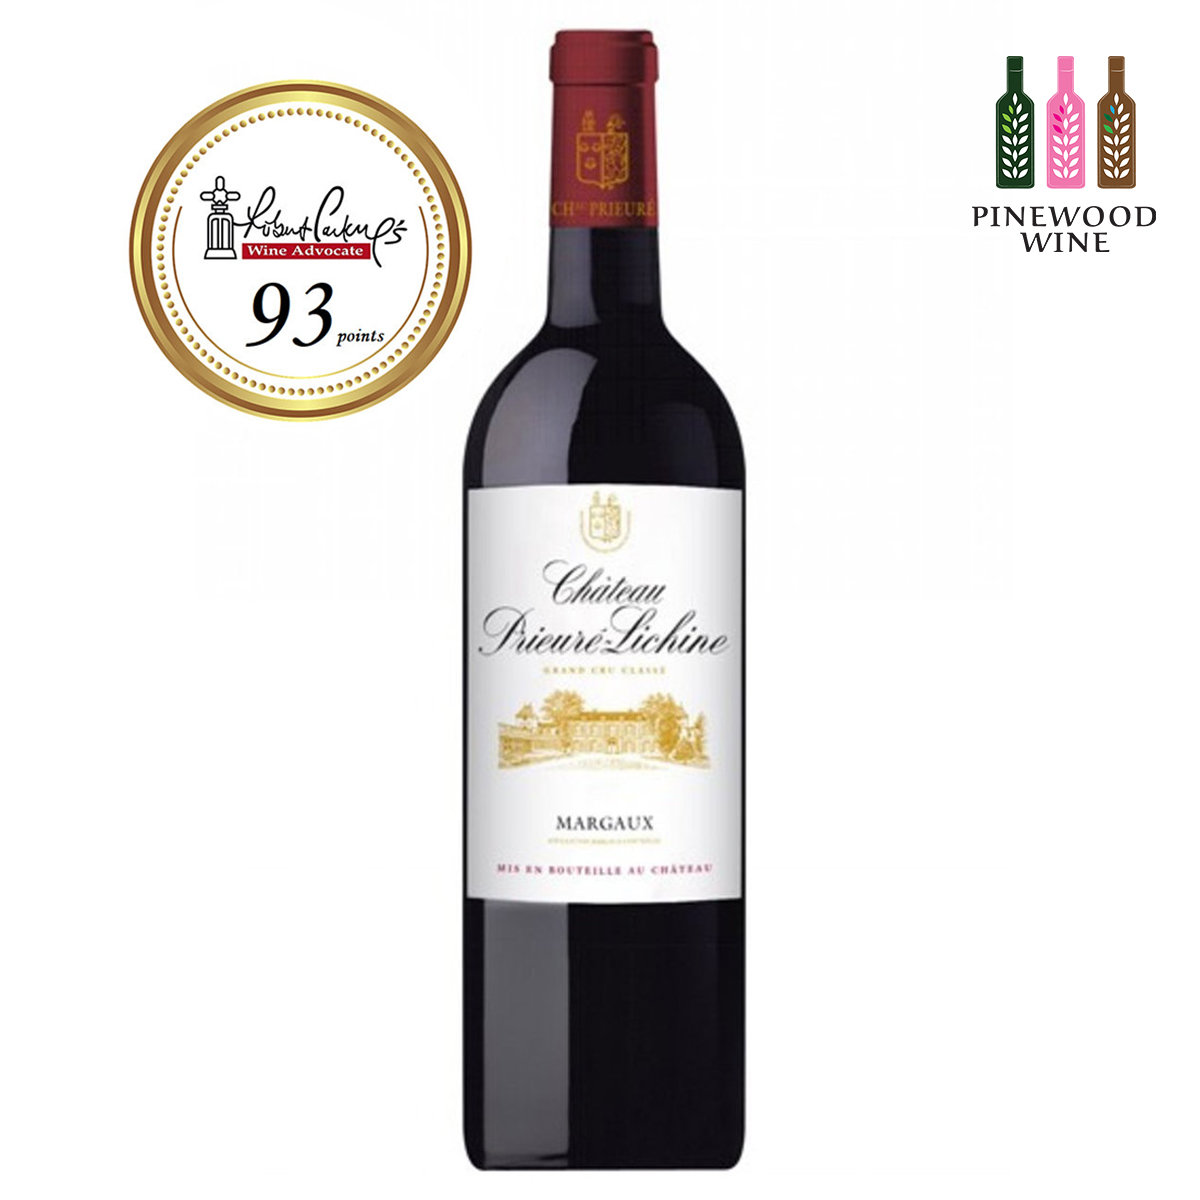 2009, RP 93 Margaux